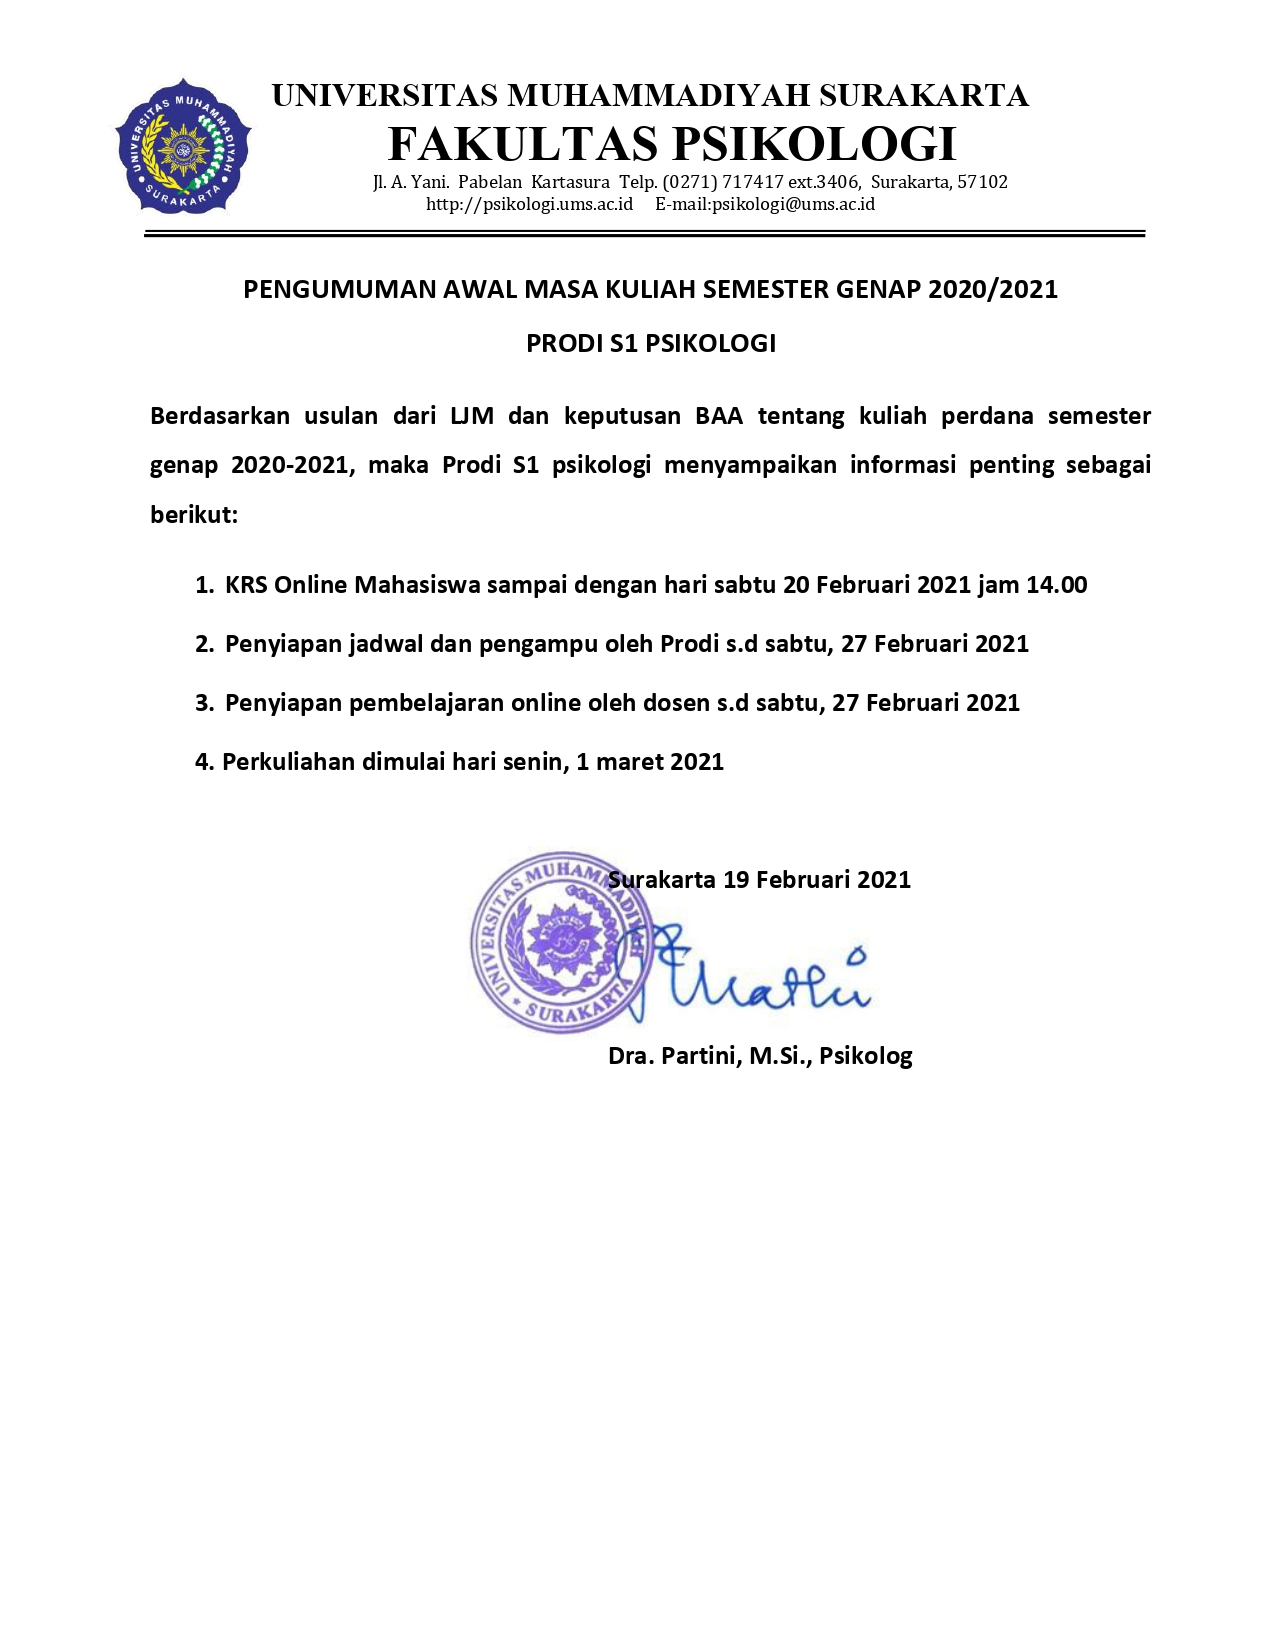 ANNOUNCEMENT OF THE BEGINNING OF 2020/2021 EVEN SEMESTER COURSE PSYCHOLOGY STUDY PROGRAM